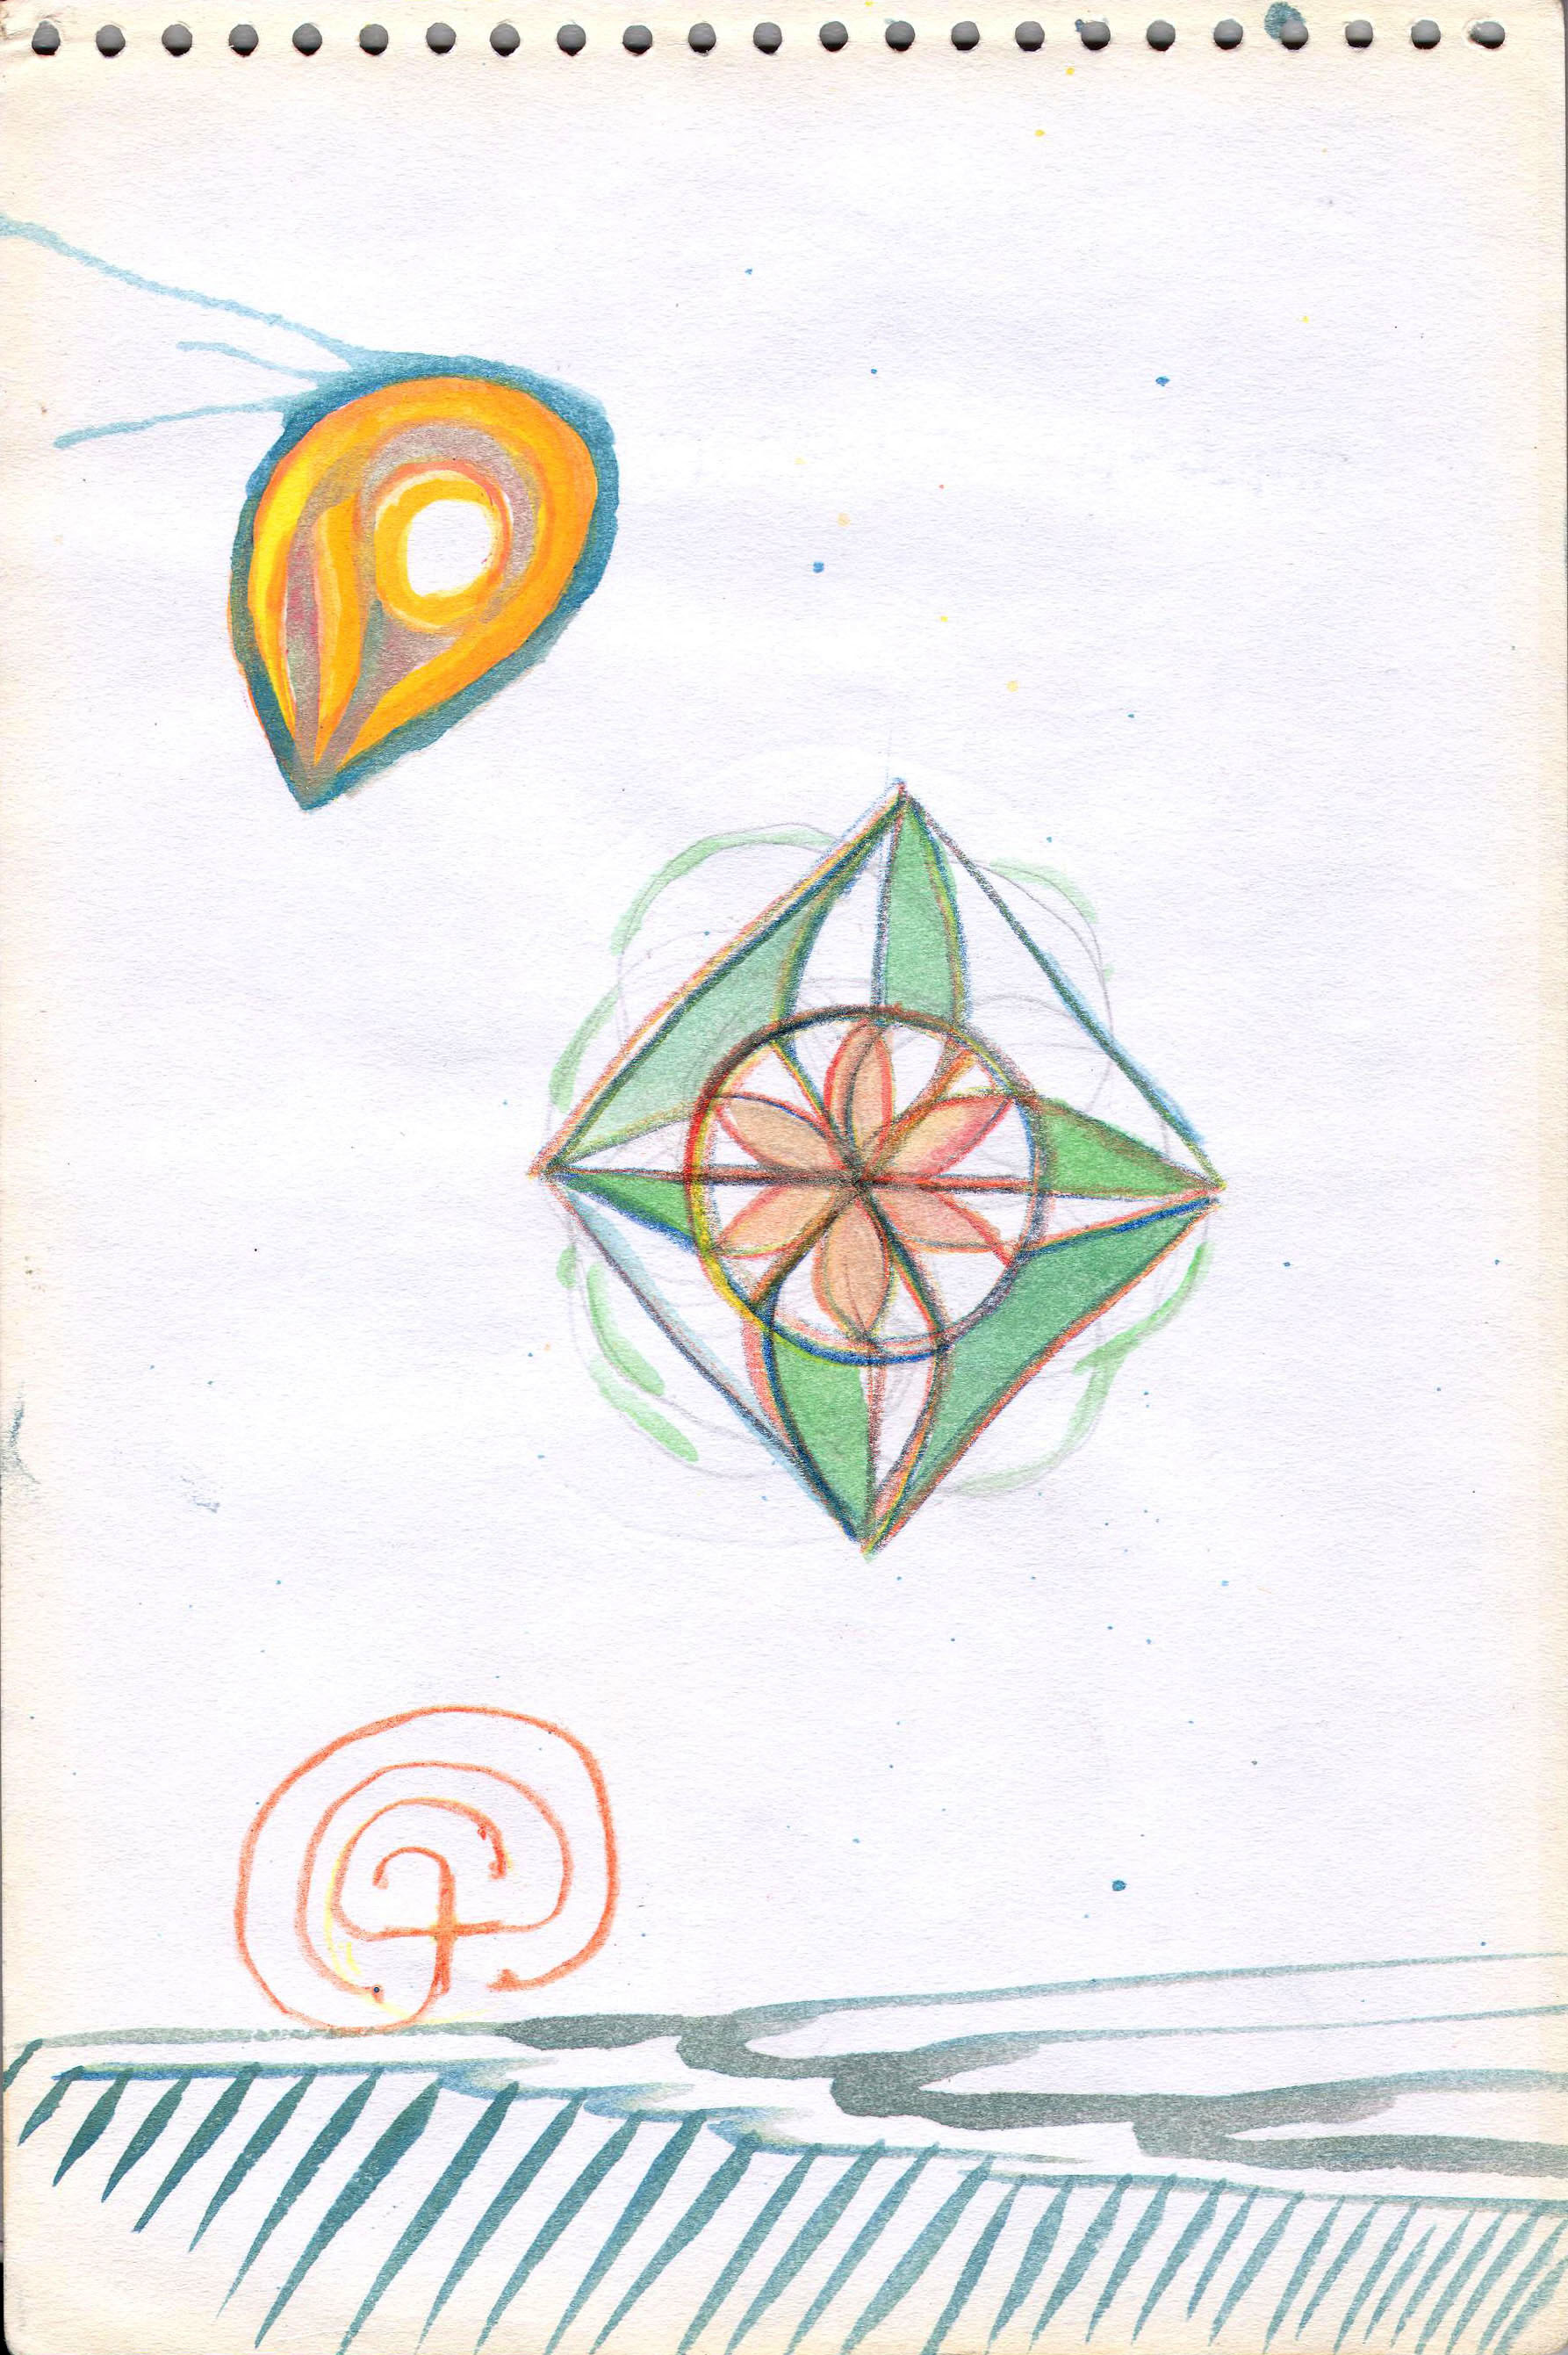 Sketches from the source by a Philippine shaman Bong Delatorre 28